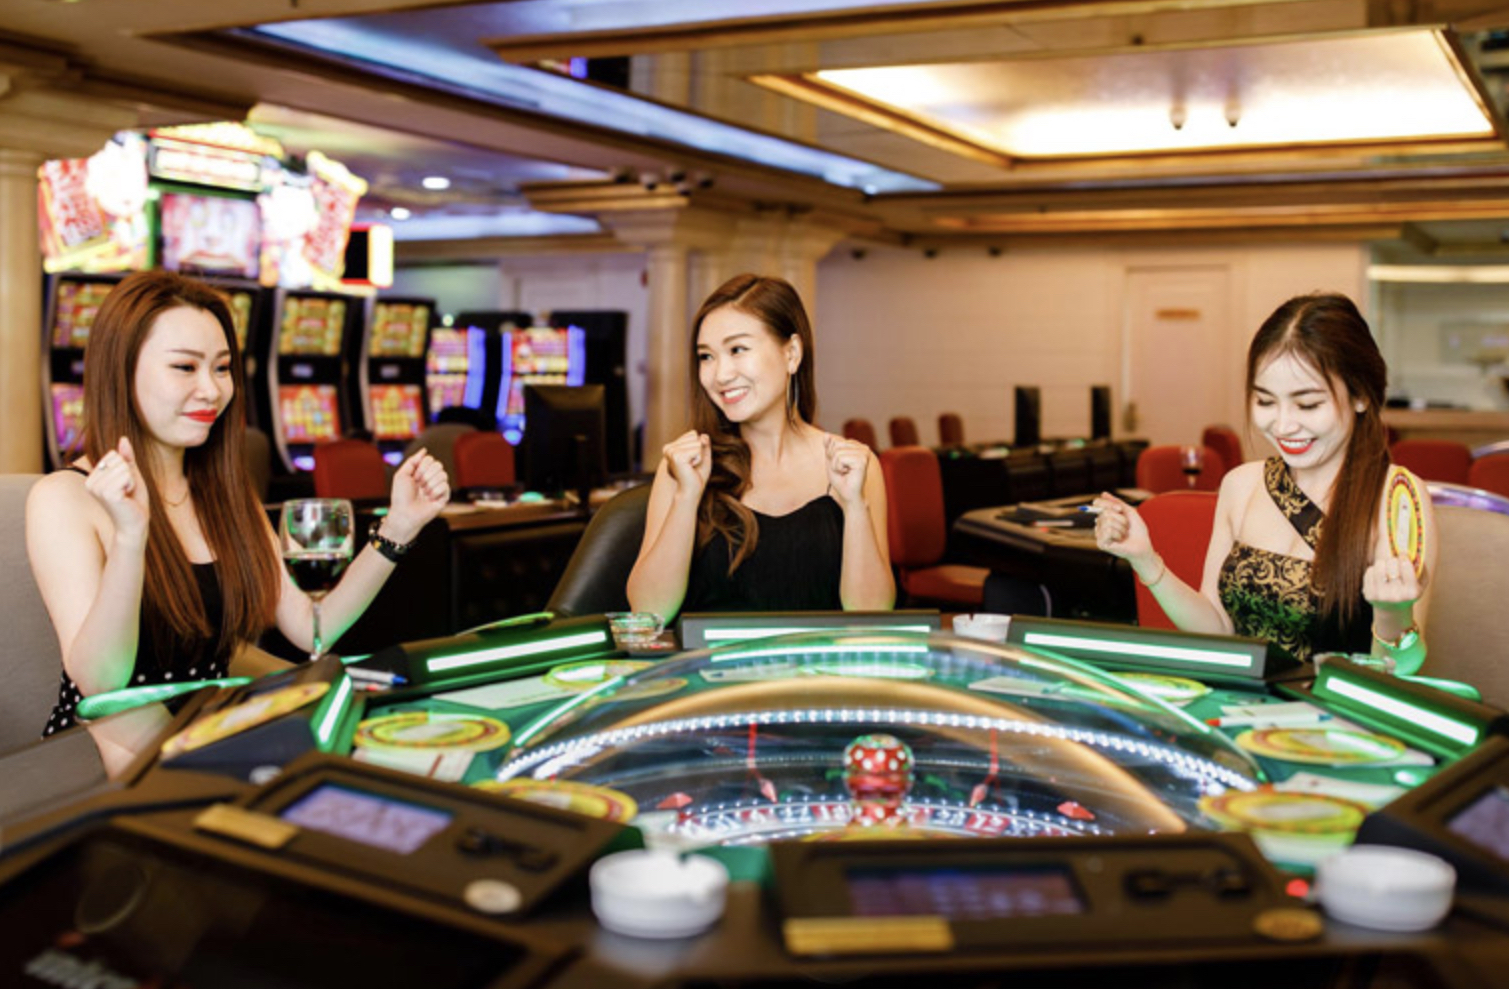 How to play gambling games sensibly?